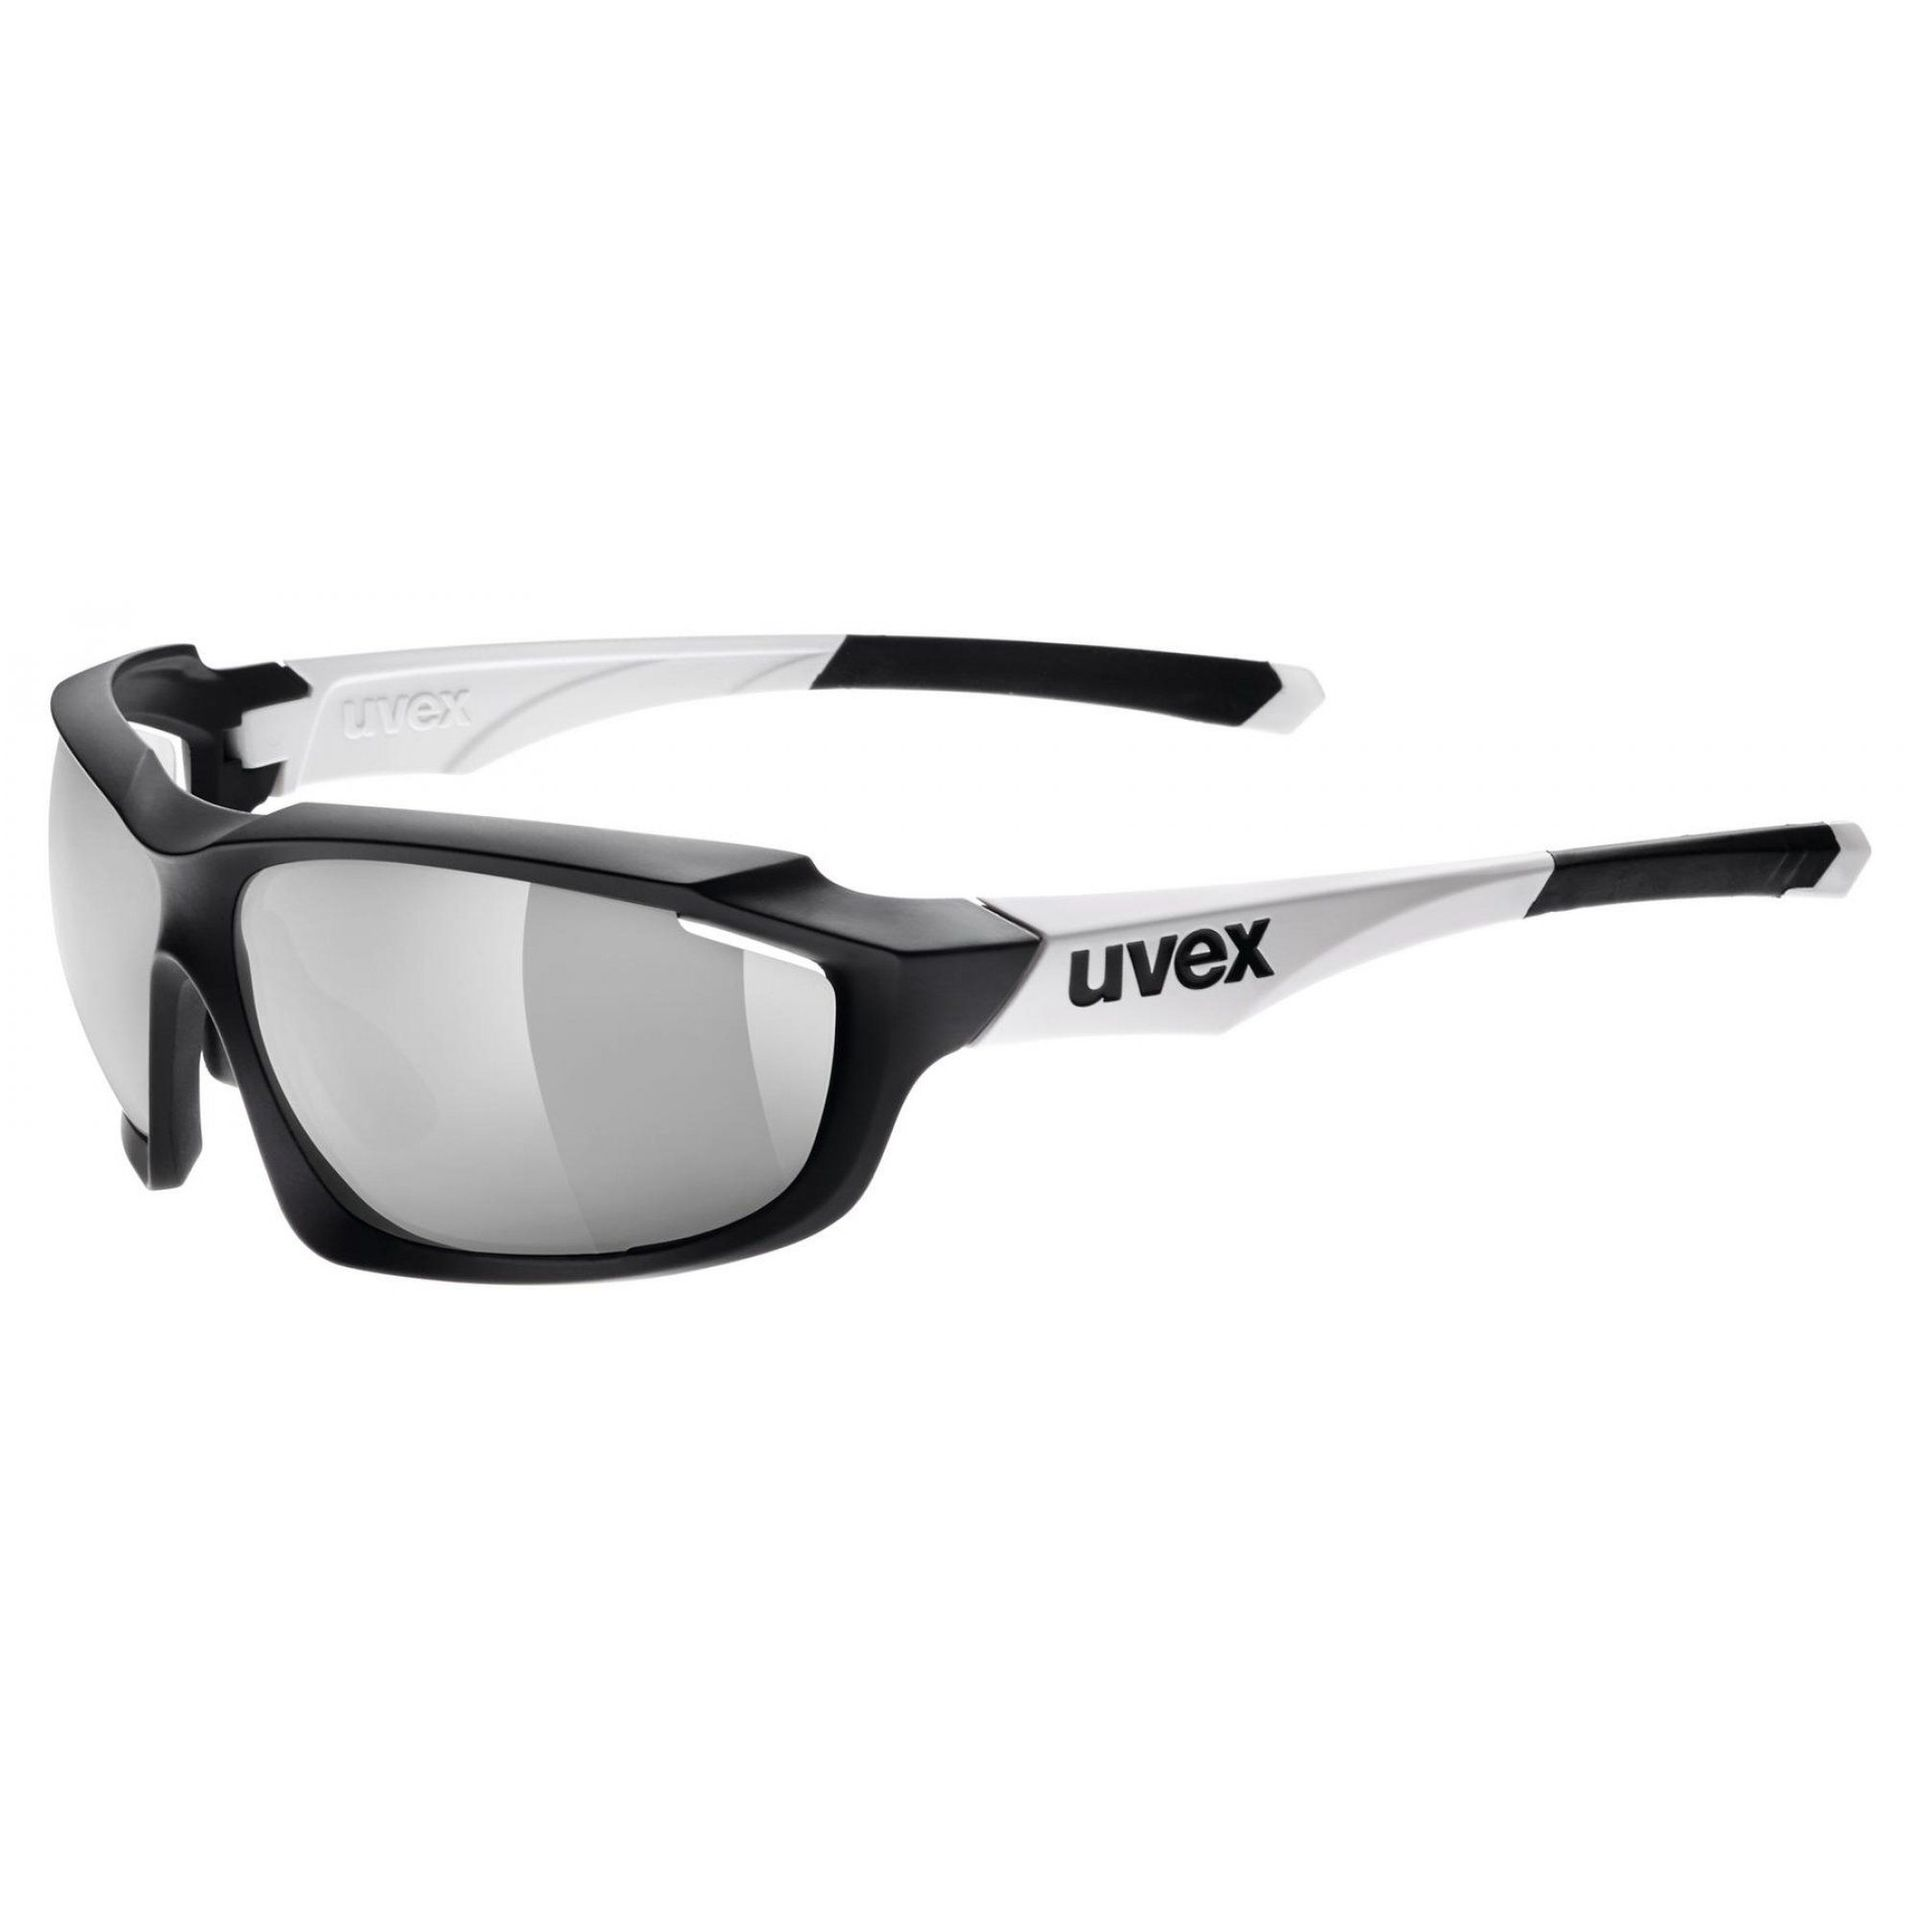 OKULARY UVEX SPORTSTYLE 710 VM BLACK WHITE